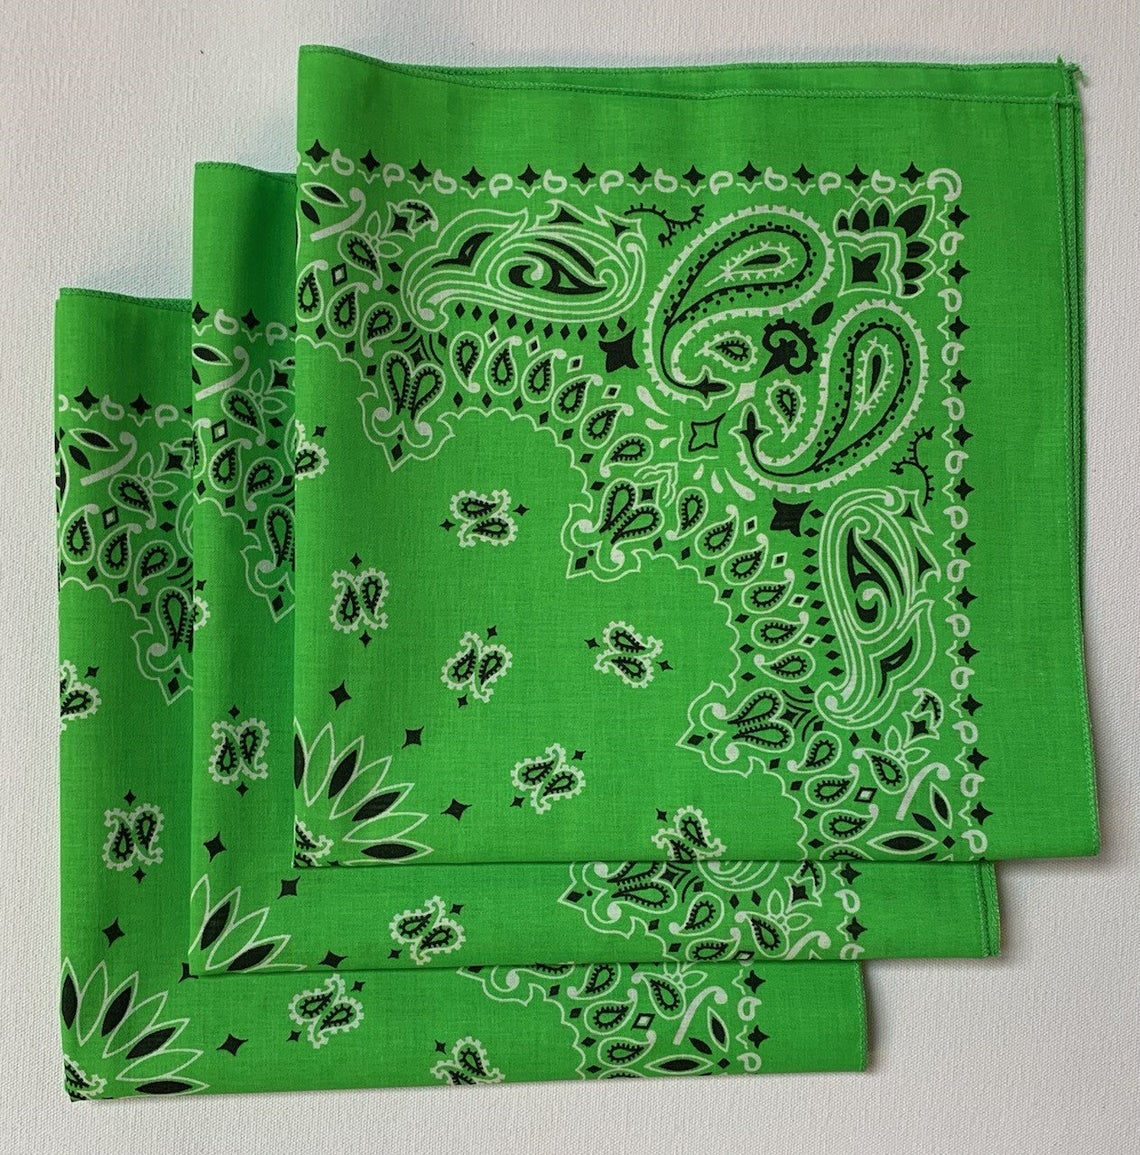 "Lime Paisley Bandanas - Made In The USA (3 Pk) 22"" x 22"""